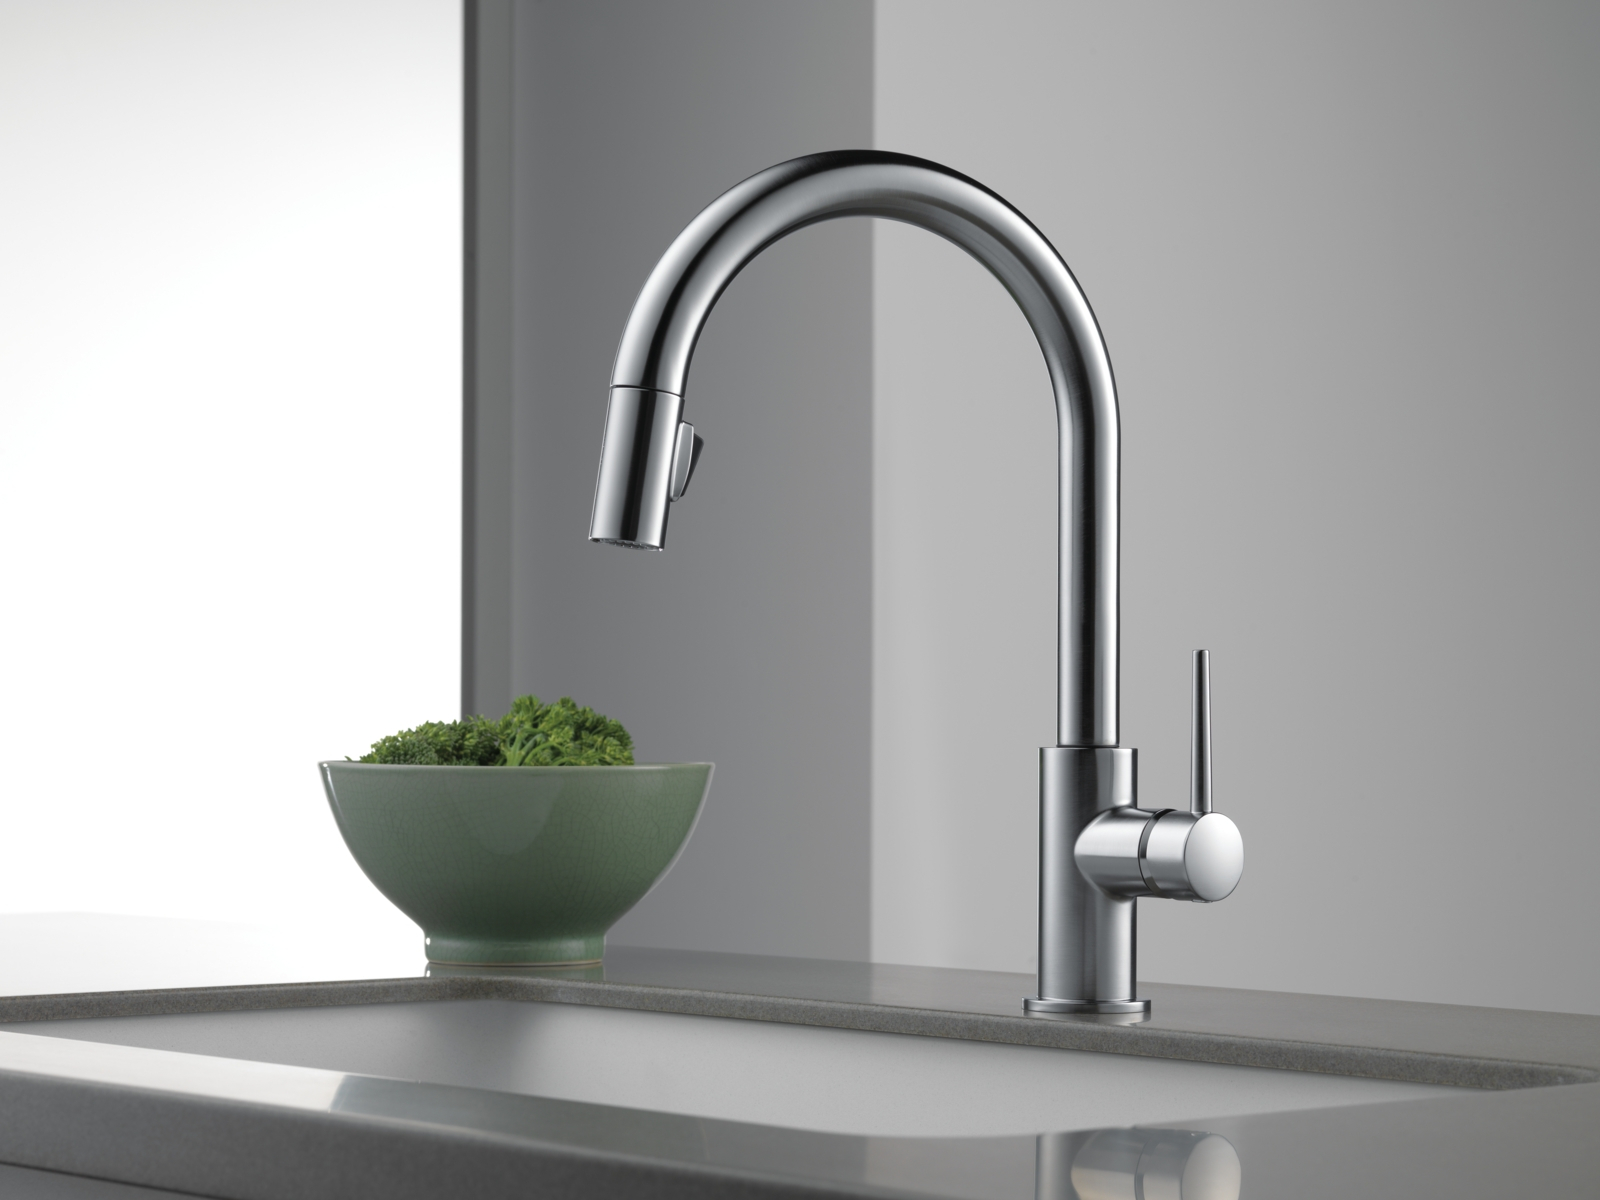 Ideas, faucet for kitchen sink faucet for kitchen sink trinsic kitchen collection kitchen faucets pot fillers and 1600 x 1200  .